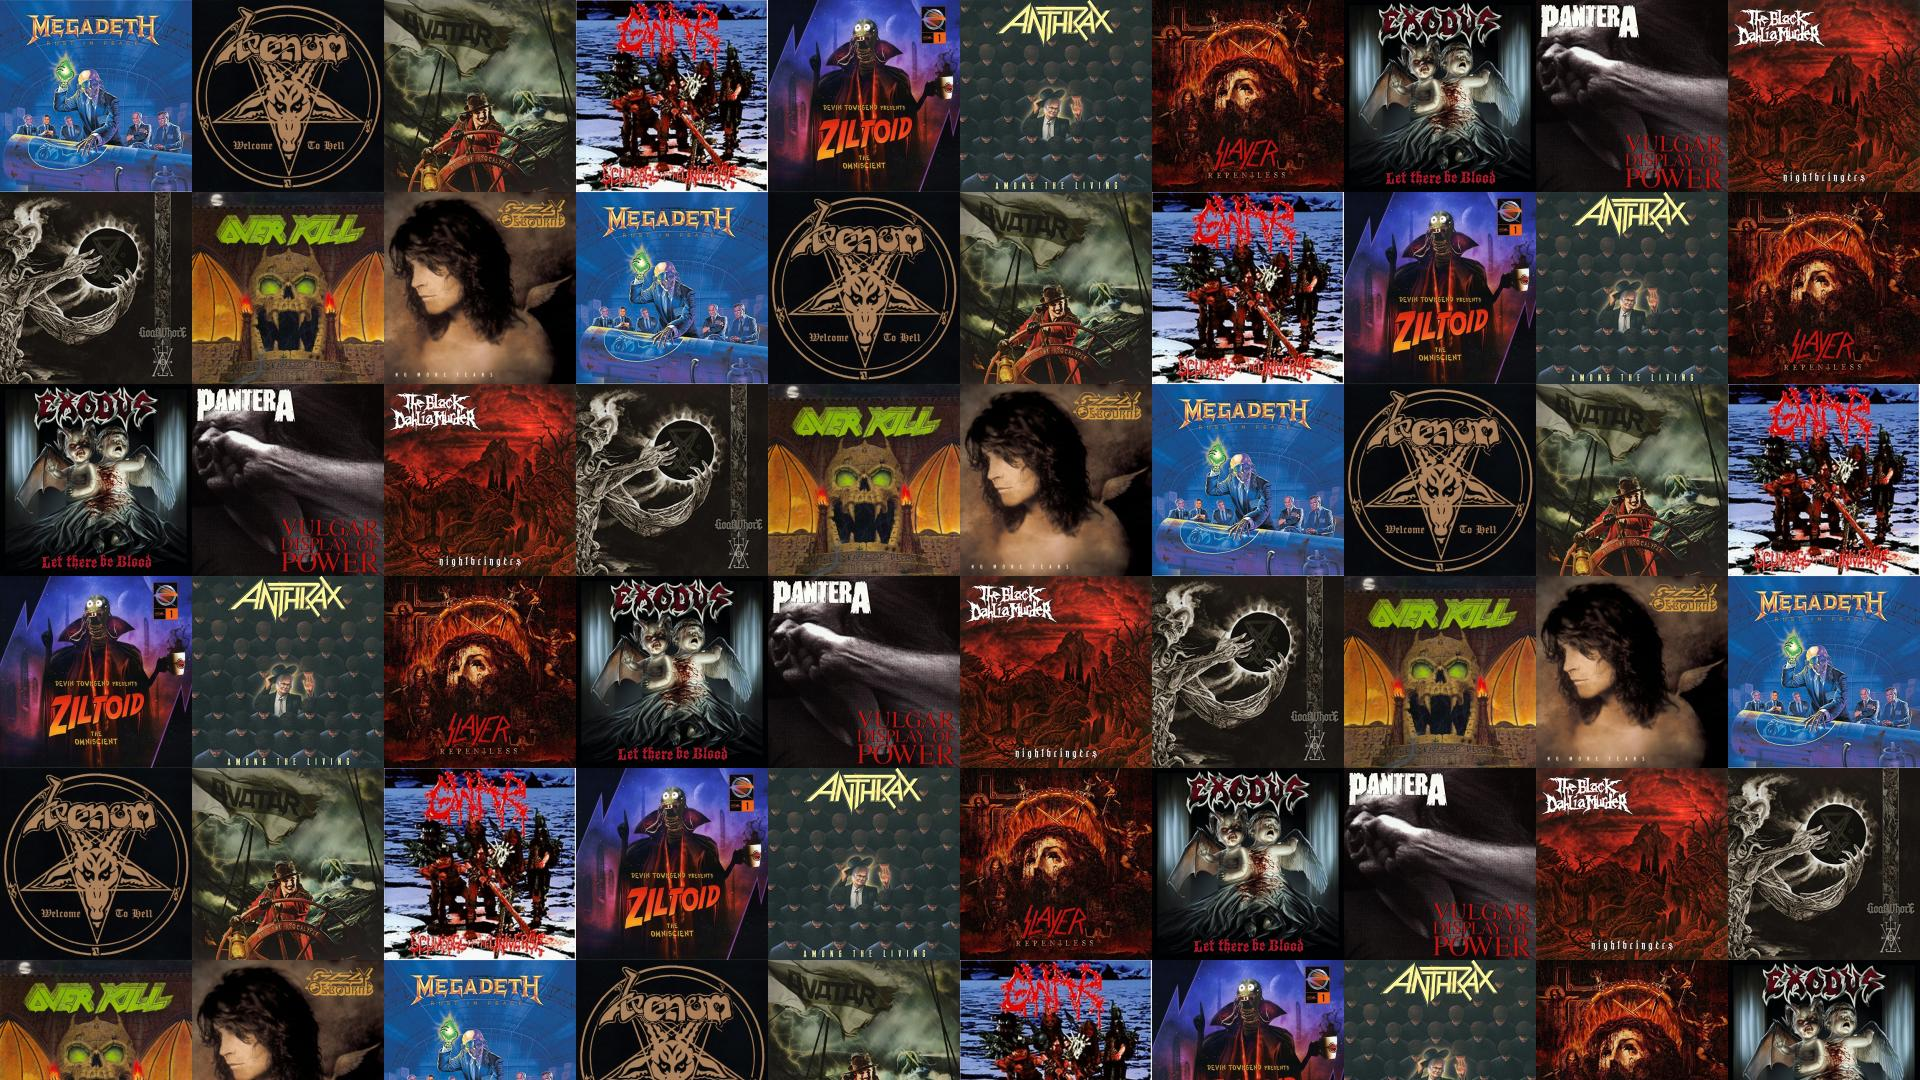 Megadeth Rust In Peace Venom Welcome To Hell Wallpaper